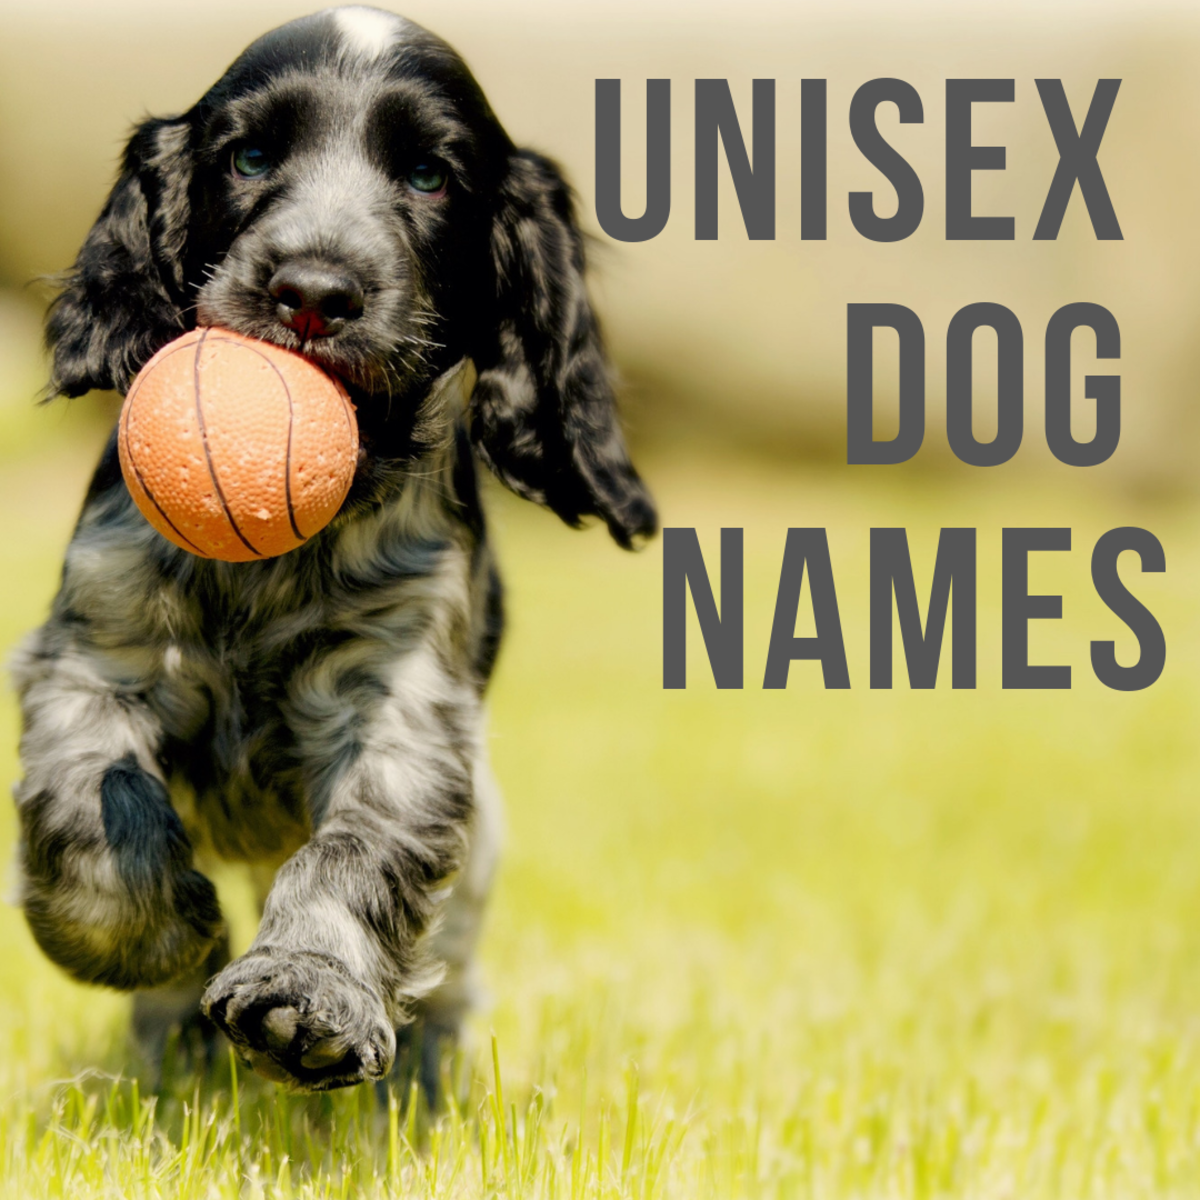 100 Unisex Or Gender Neutral Dog Names Pethelpful By Fellow Animal Lovers And Experts